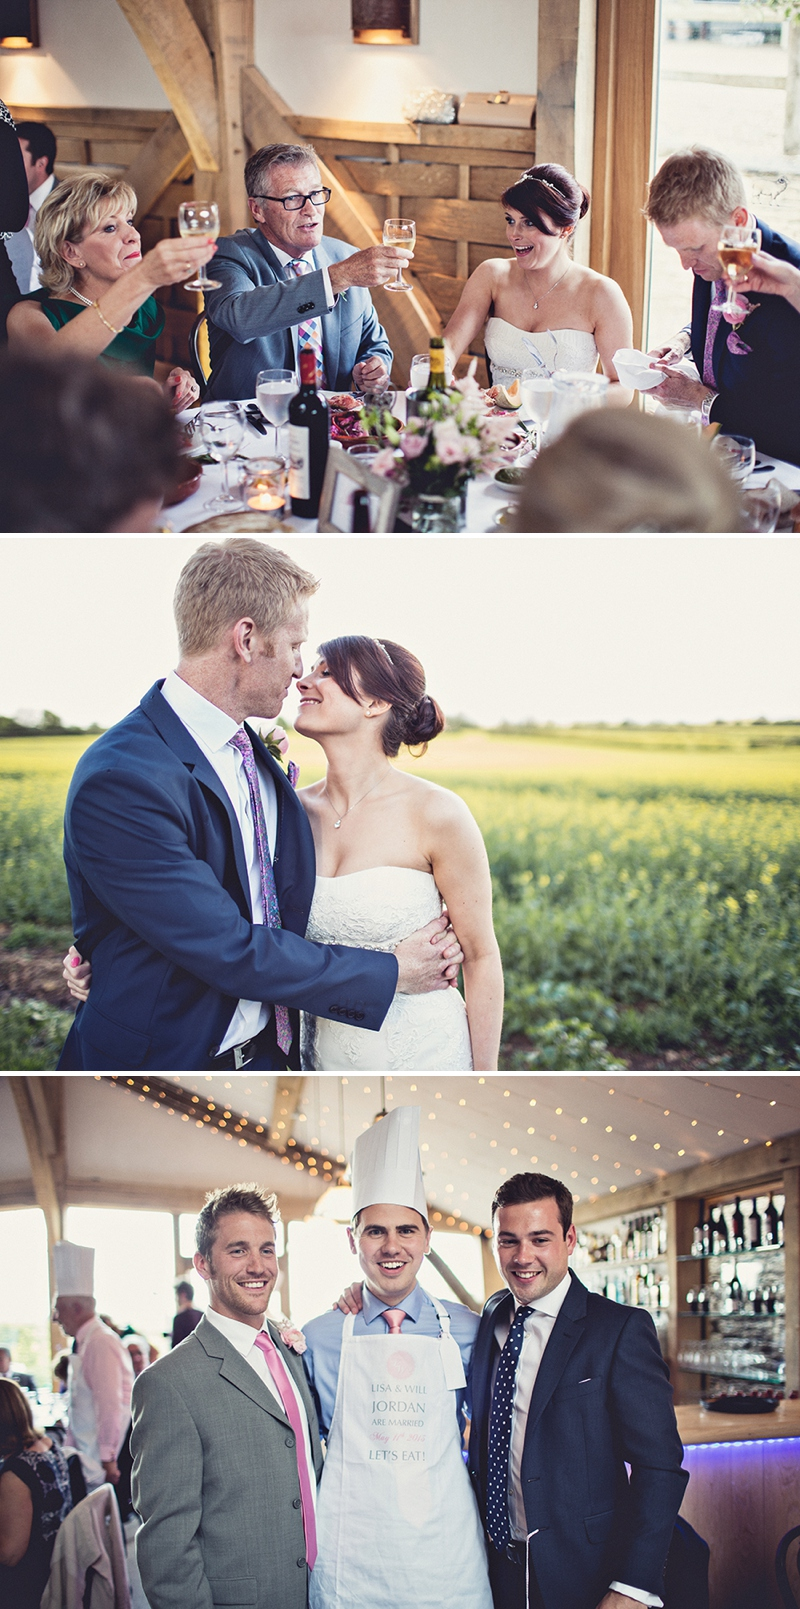 A beautiful cripps barn wedding reception with a pink and grey a pretty wedding at cripps barn by anna clarke photography with a lace pronovias dress0317 fandeluxe